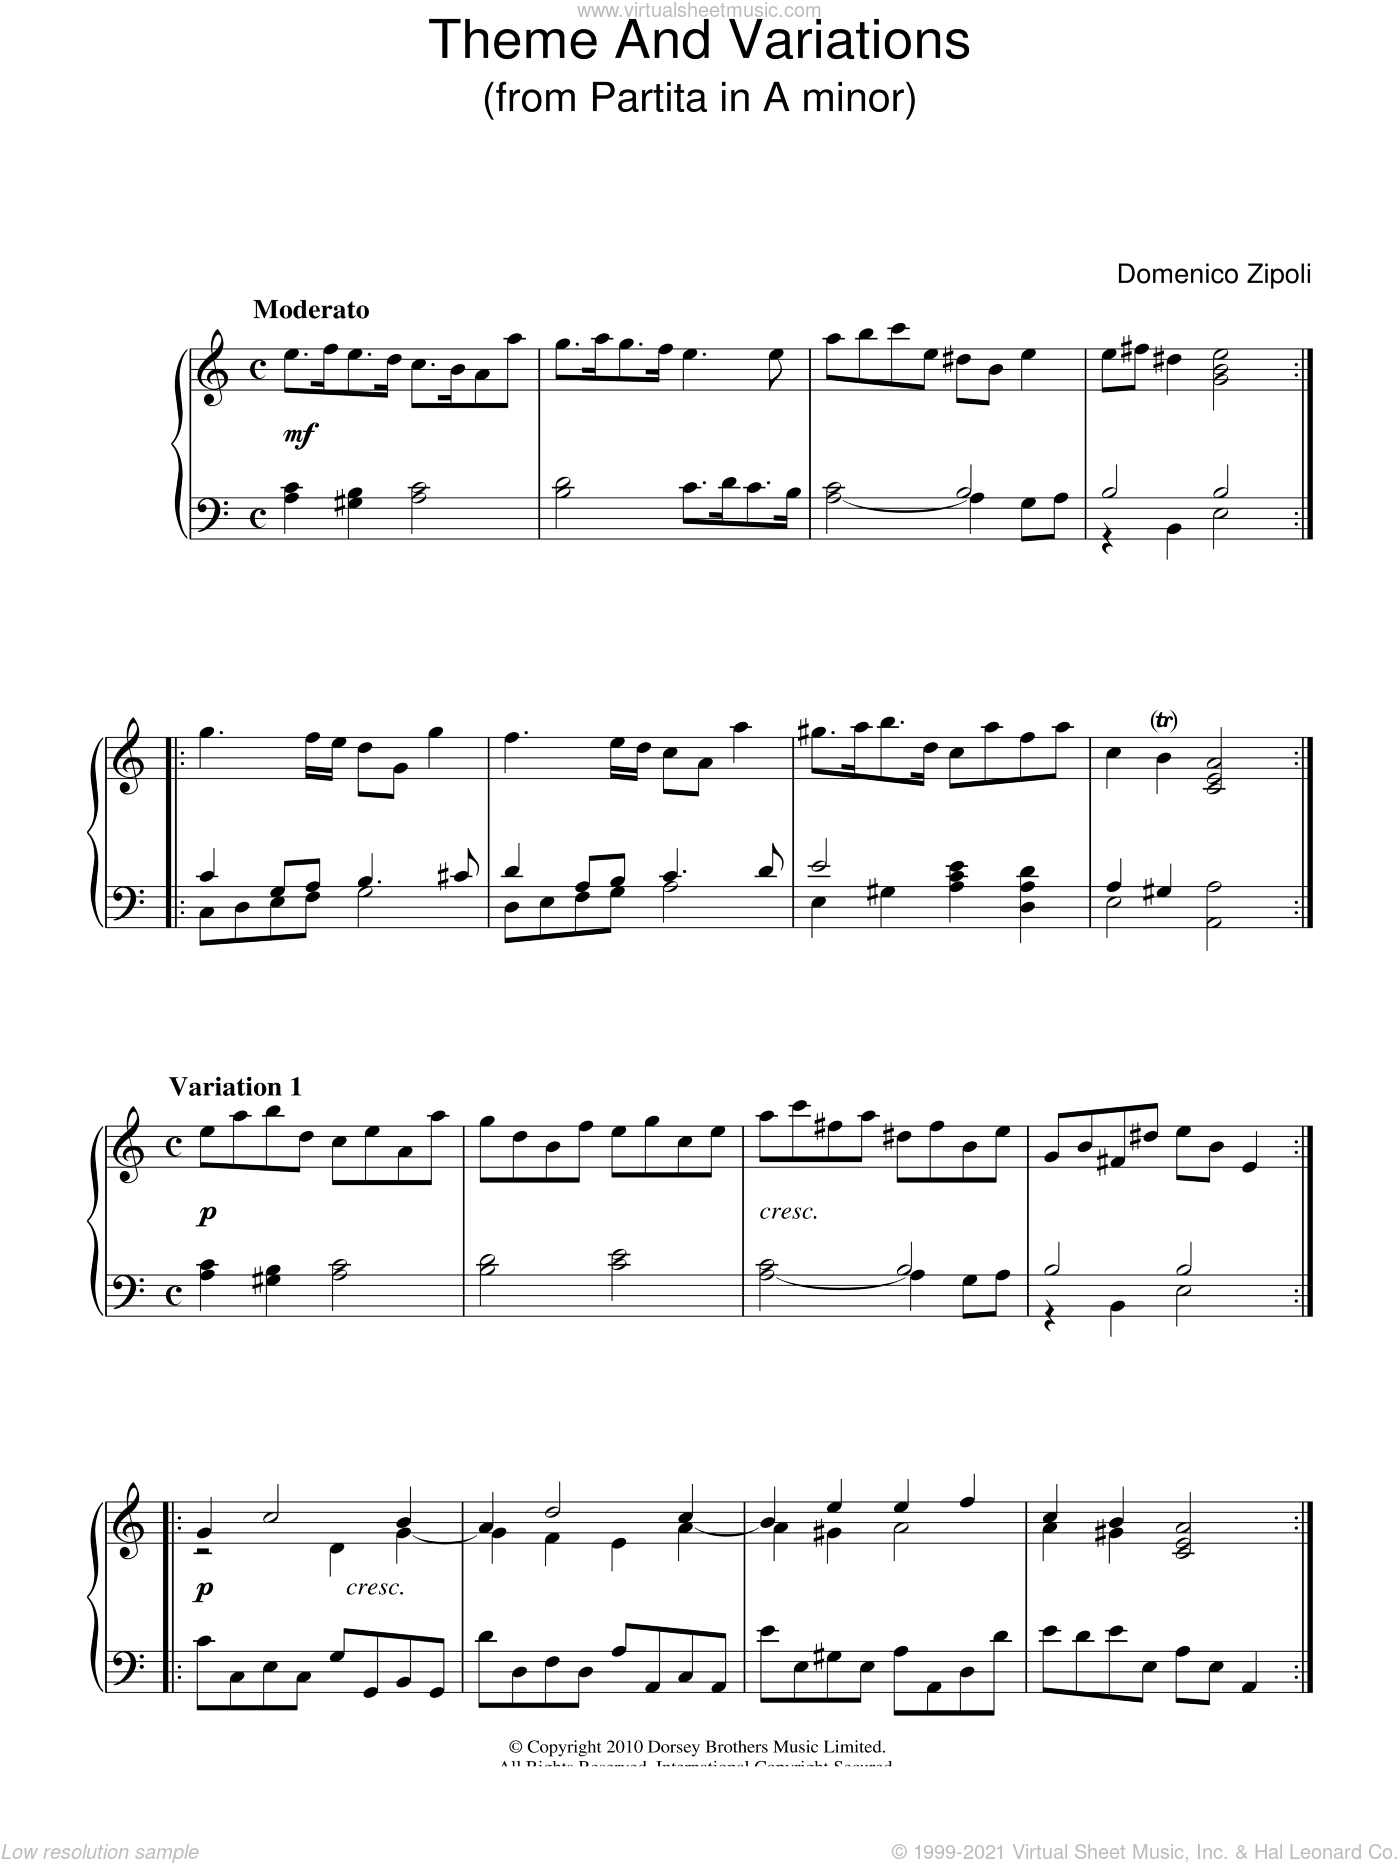 Theme And Variations From Partita In A Minor sheet music for piano solo by Domenico Zipoli, classical score, intermediate skill level